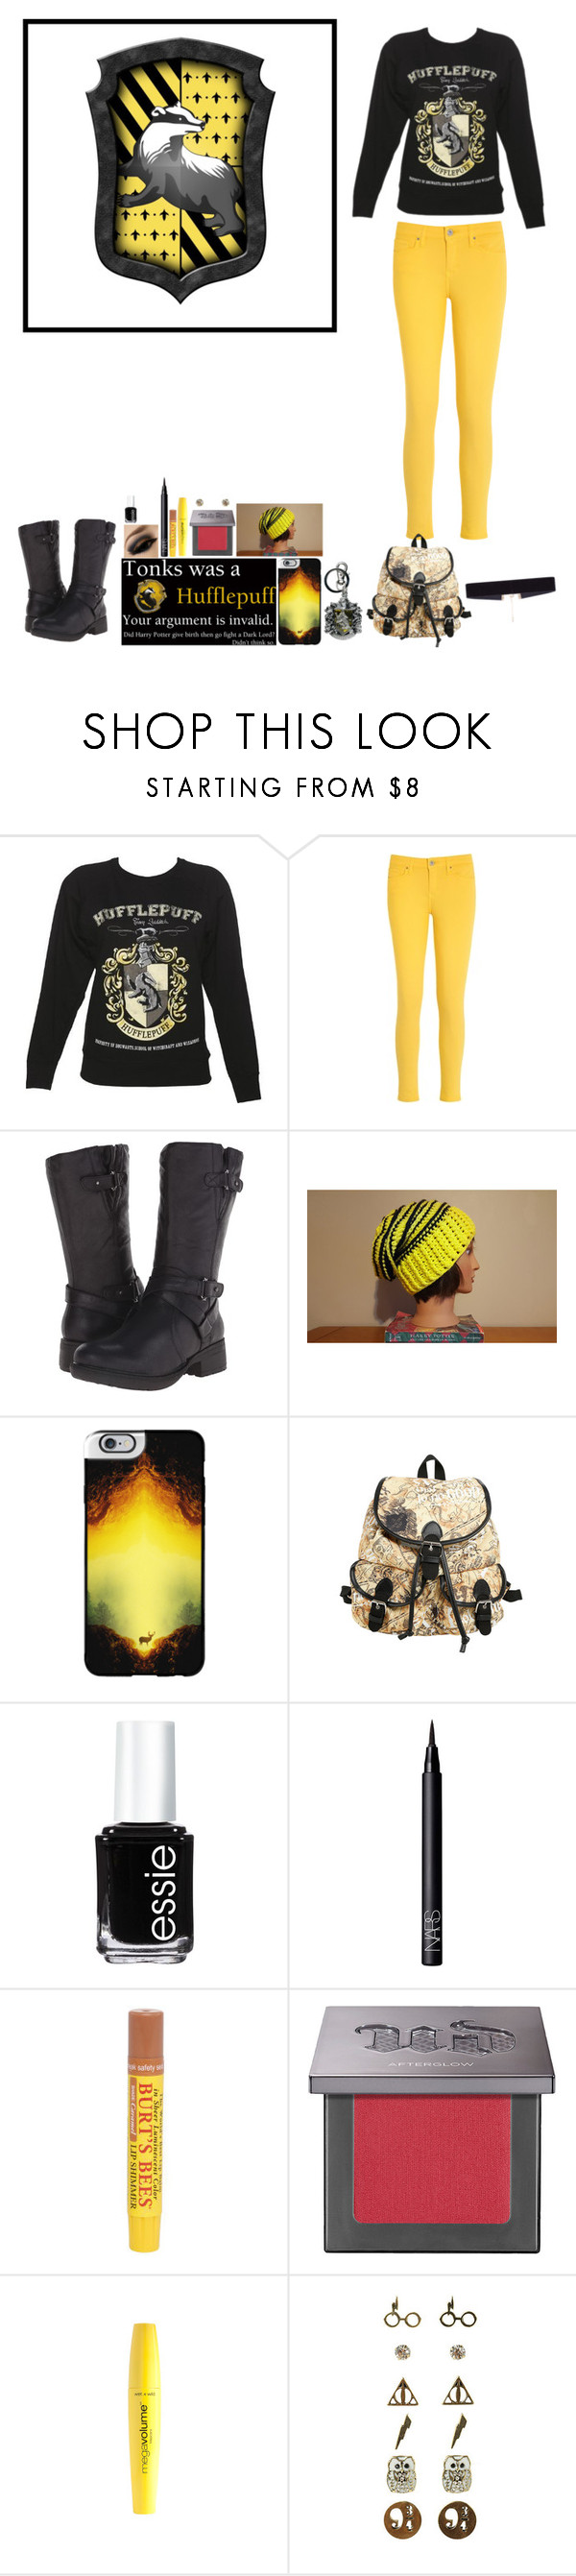 """""""Hufflepuff Pride"""" by katykitty5397 ❤ liked on Polyvore featuring Tommy Hilfiger, BareTraps, Casetify, Essie, NARS Cosmetics, Burt's Bees, Urban Decay, Wet n Wild, 8 Other Reasons and harrypotter"""